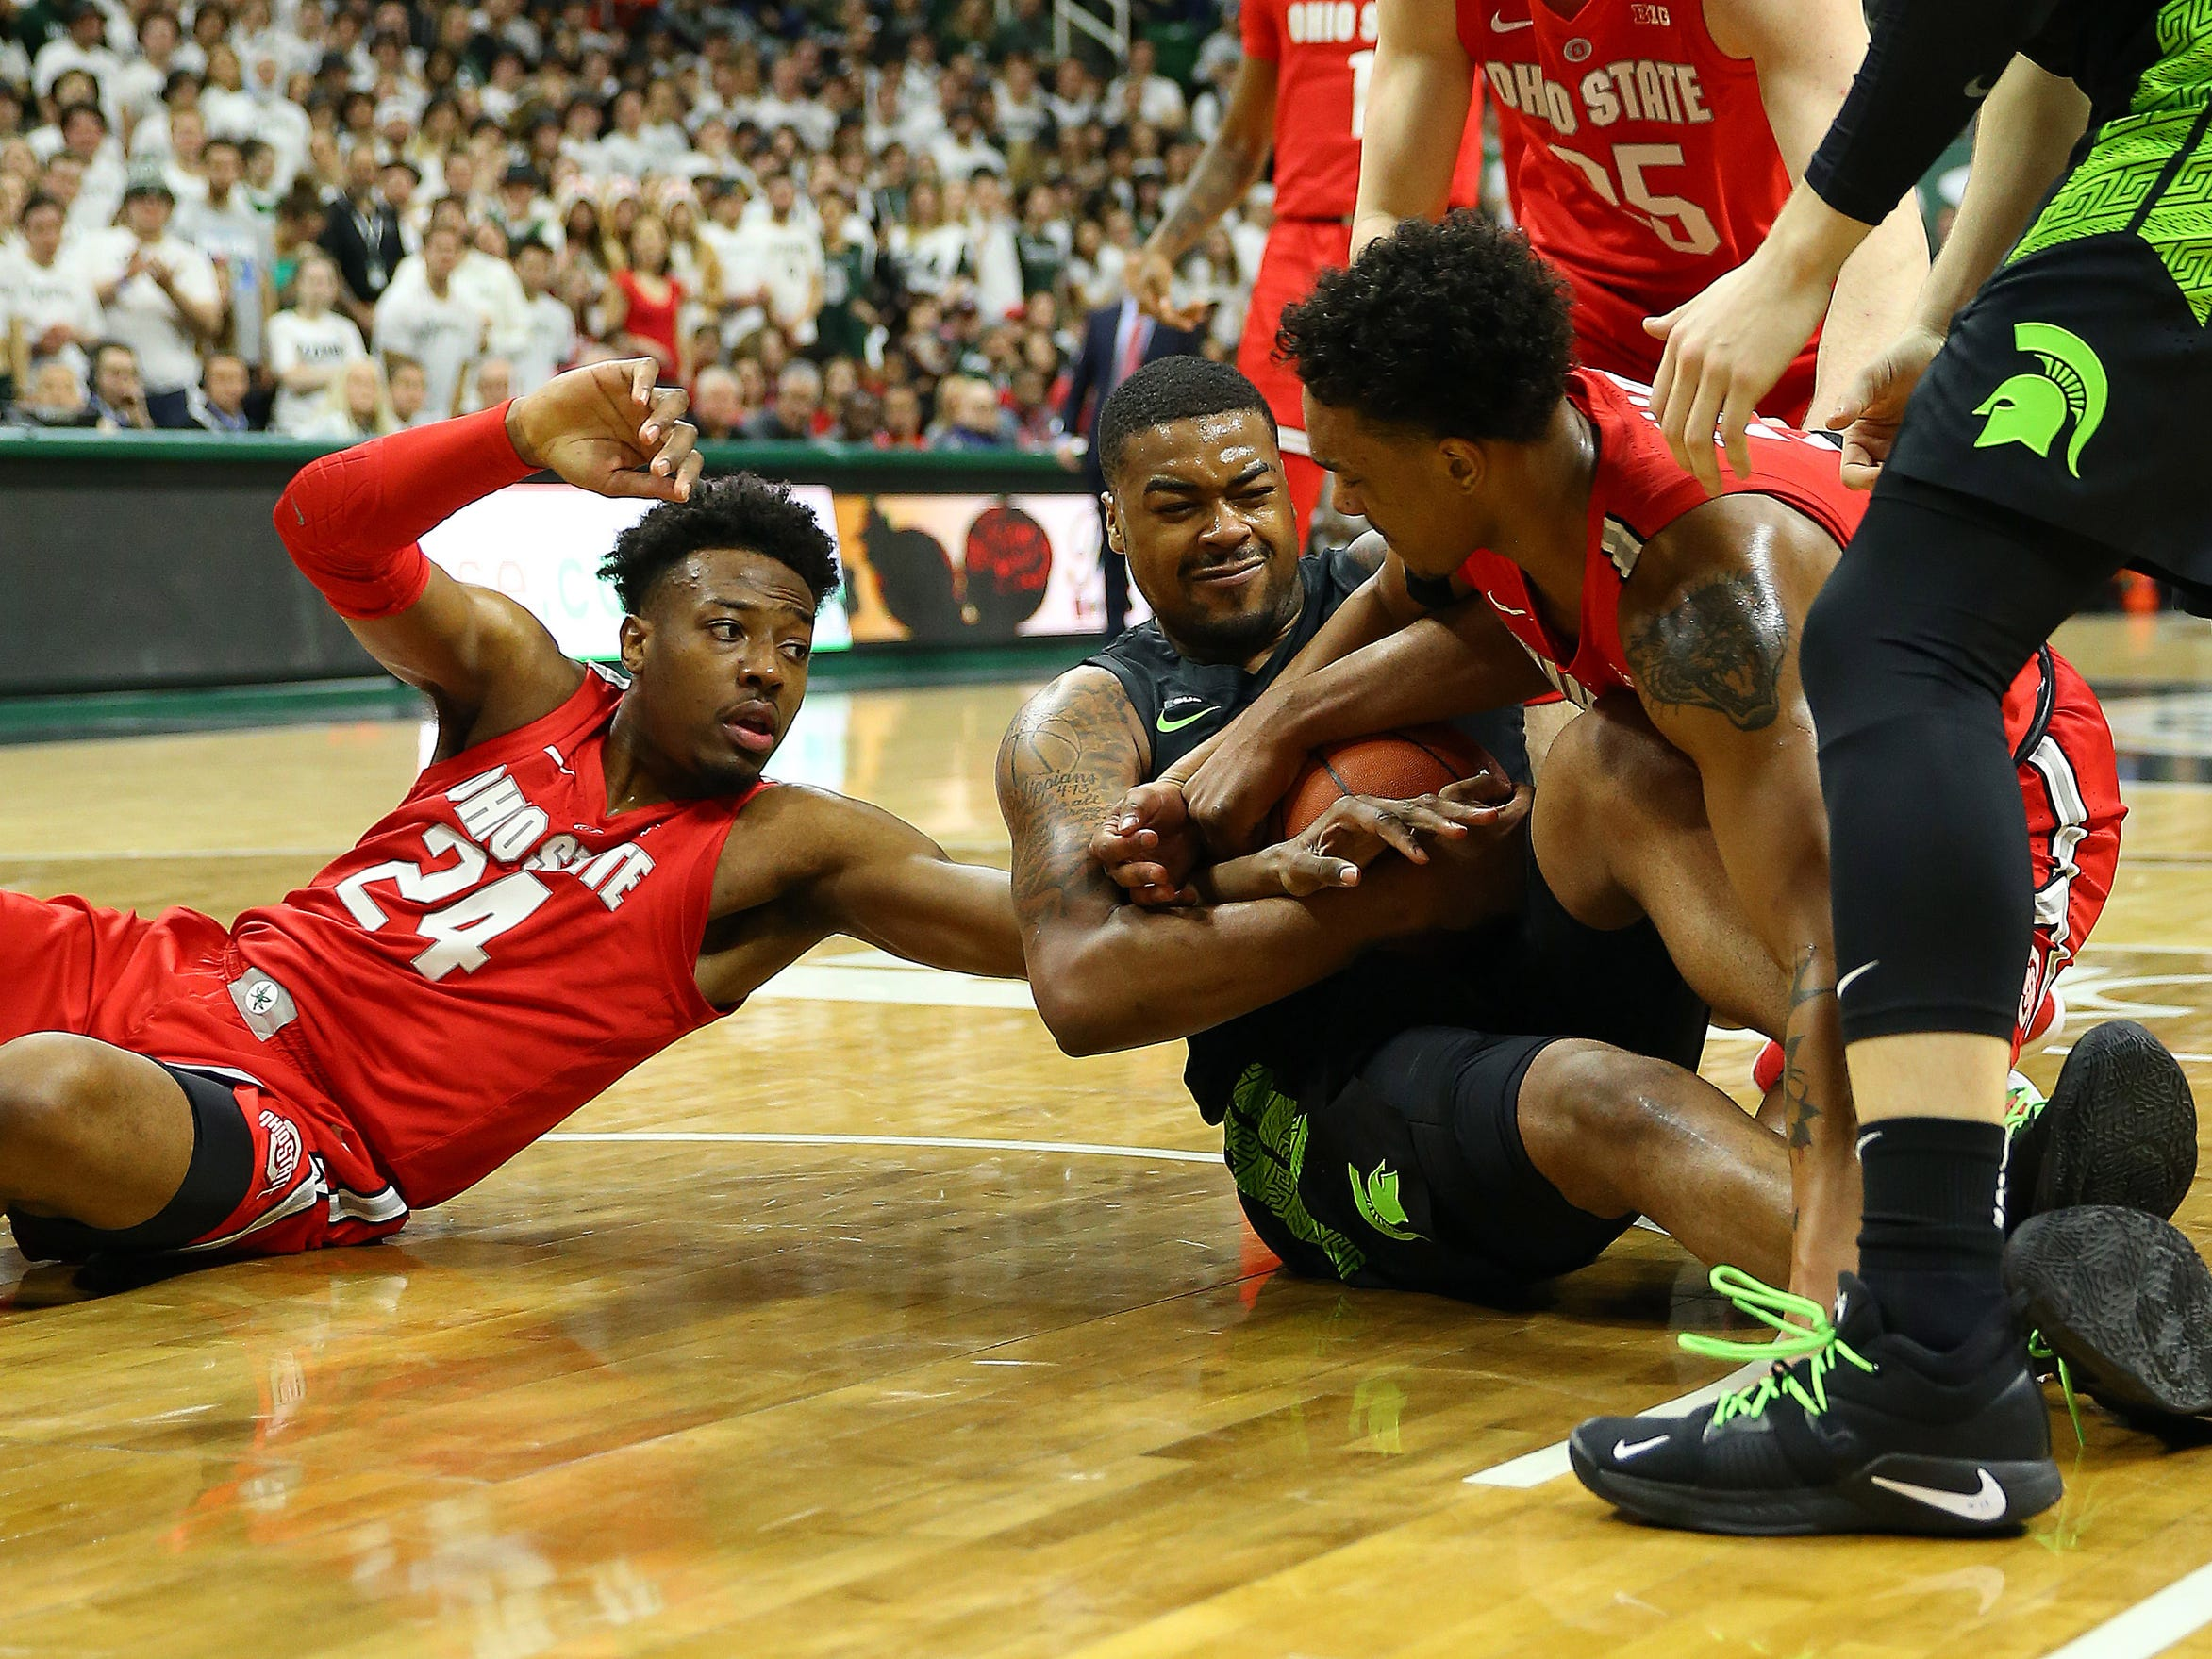 Michigan State's Nick Ward fights for a loose ball against Ohio State in the first half Sunday, Feb. 17, 2019, in East Lansing.